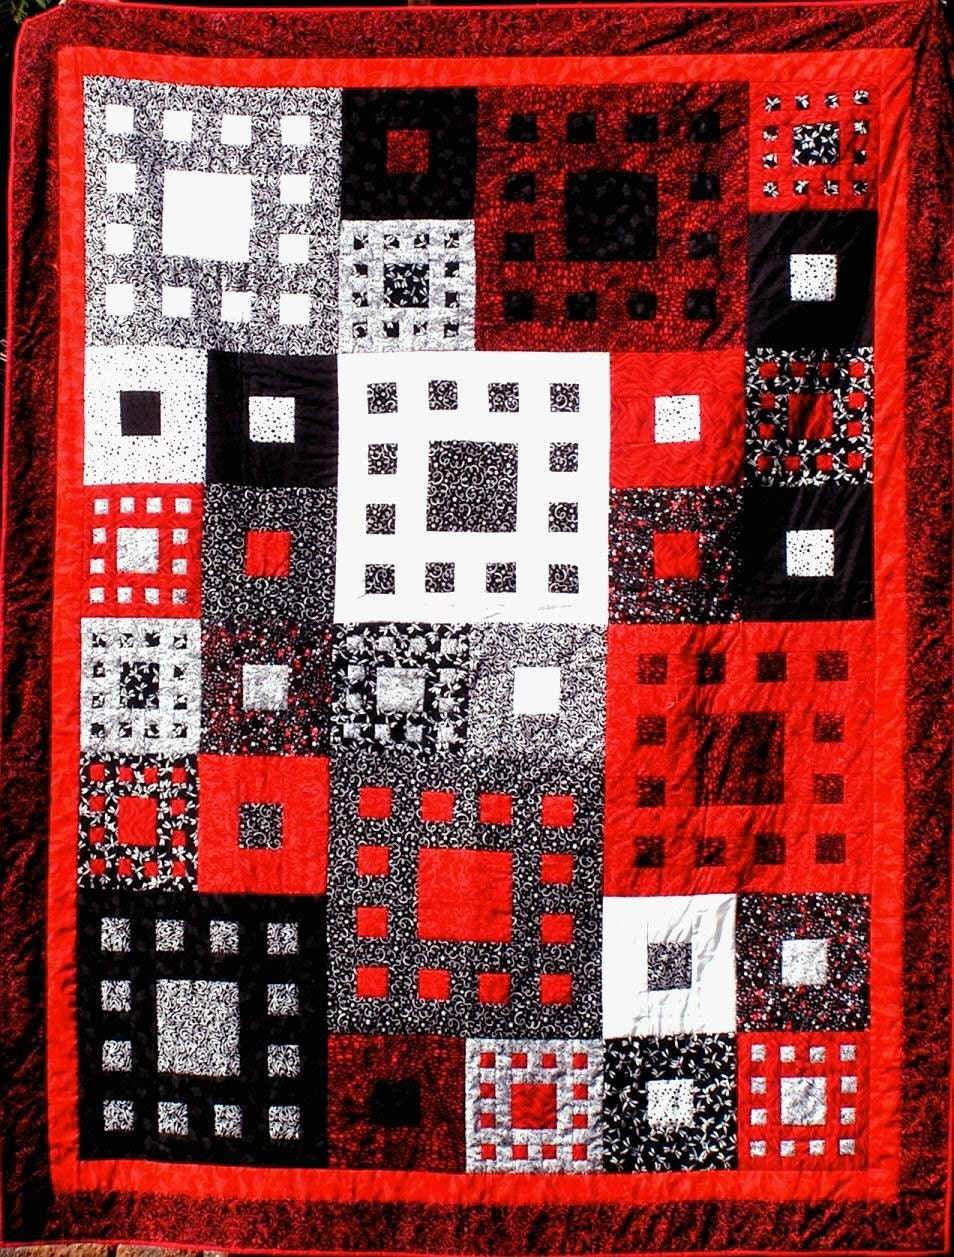 Quilt--Geometric Boxes in Black, White and Red